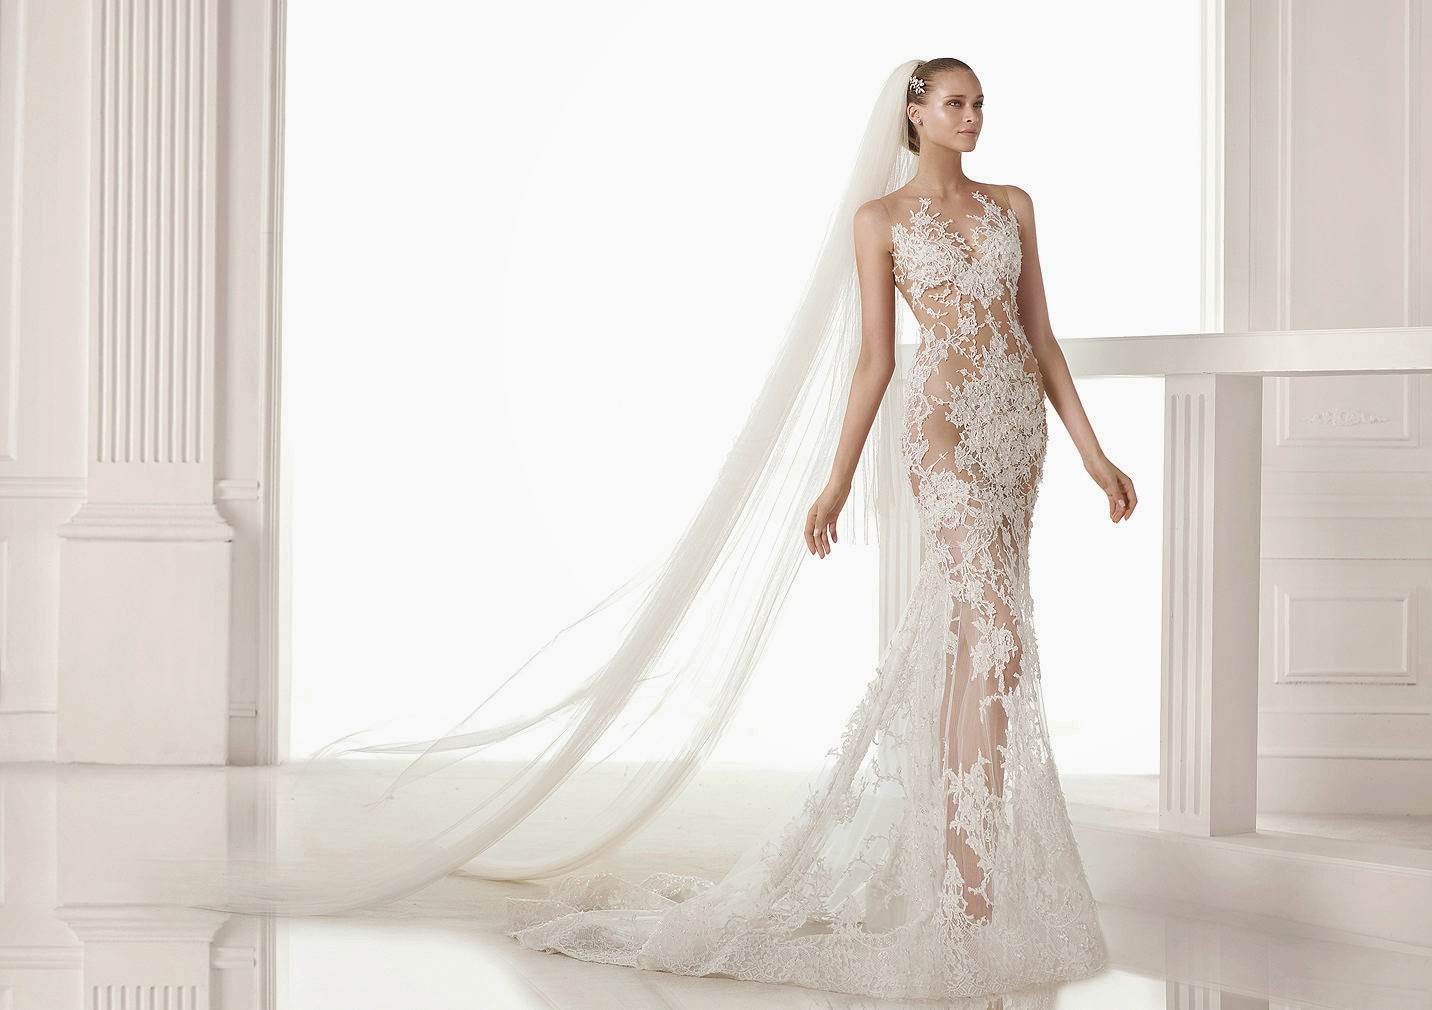 50 Most Elegant Wedding Dresses